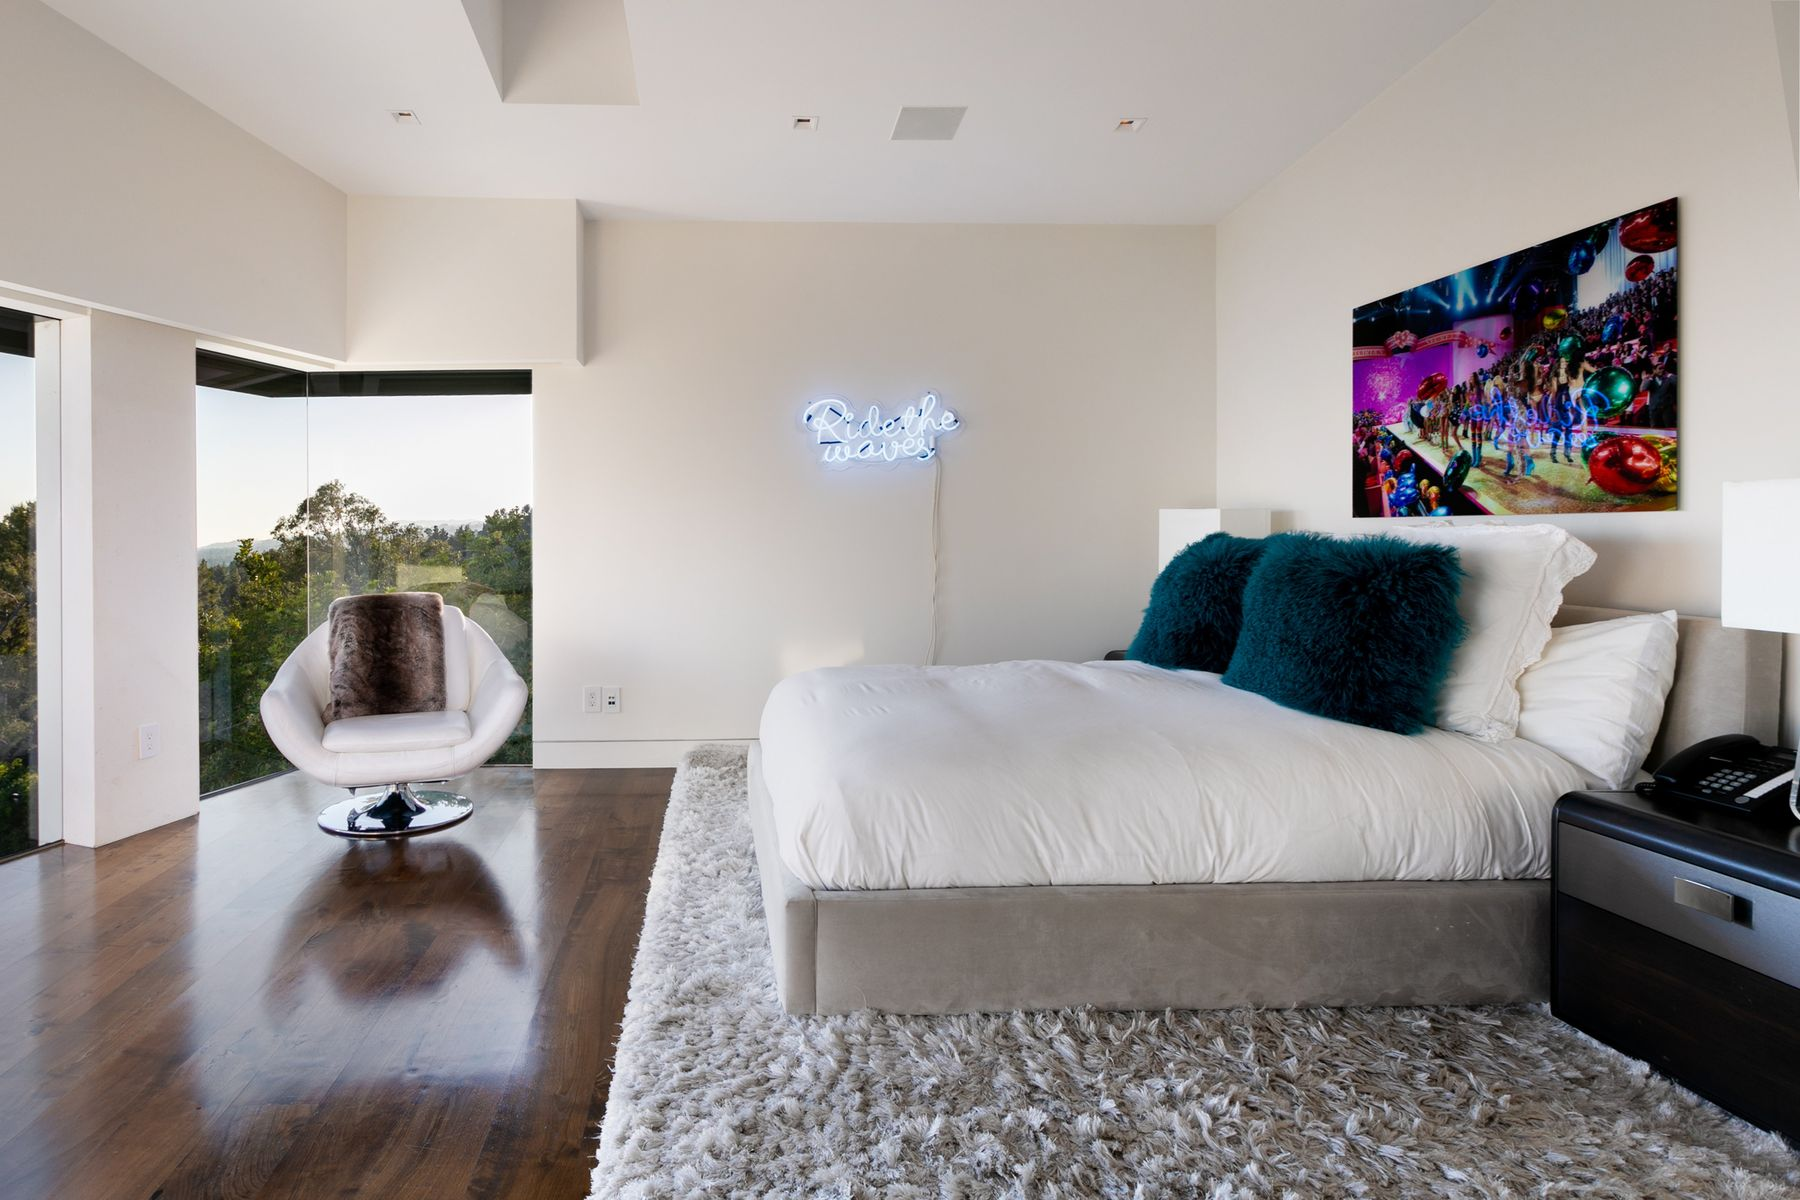 Additional photo for property listing at 9380 Sierra Mar Drive Los Angeles, California 90069 Estados Unidos